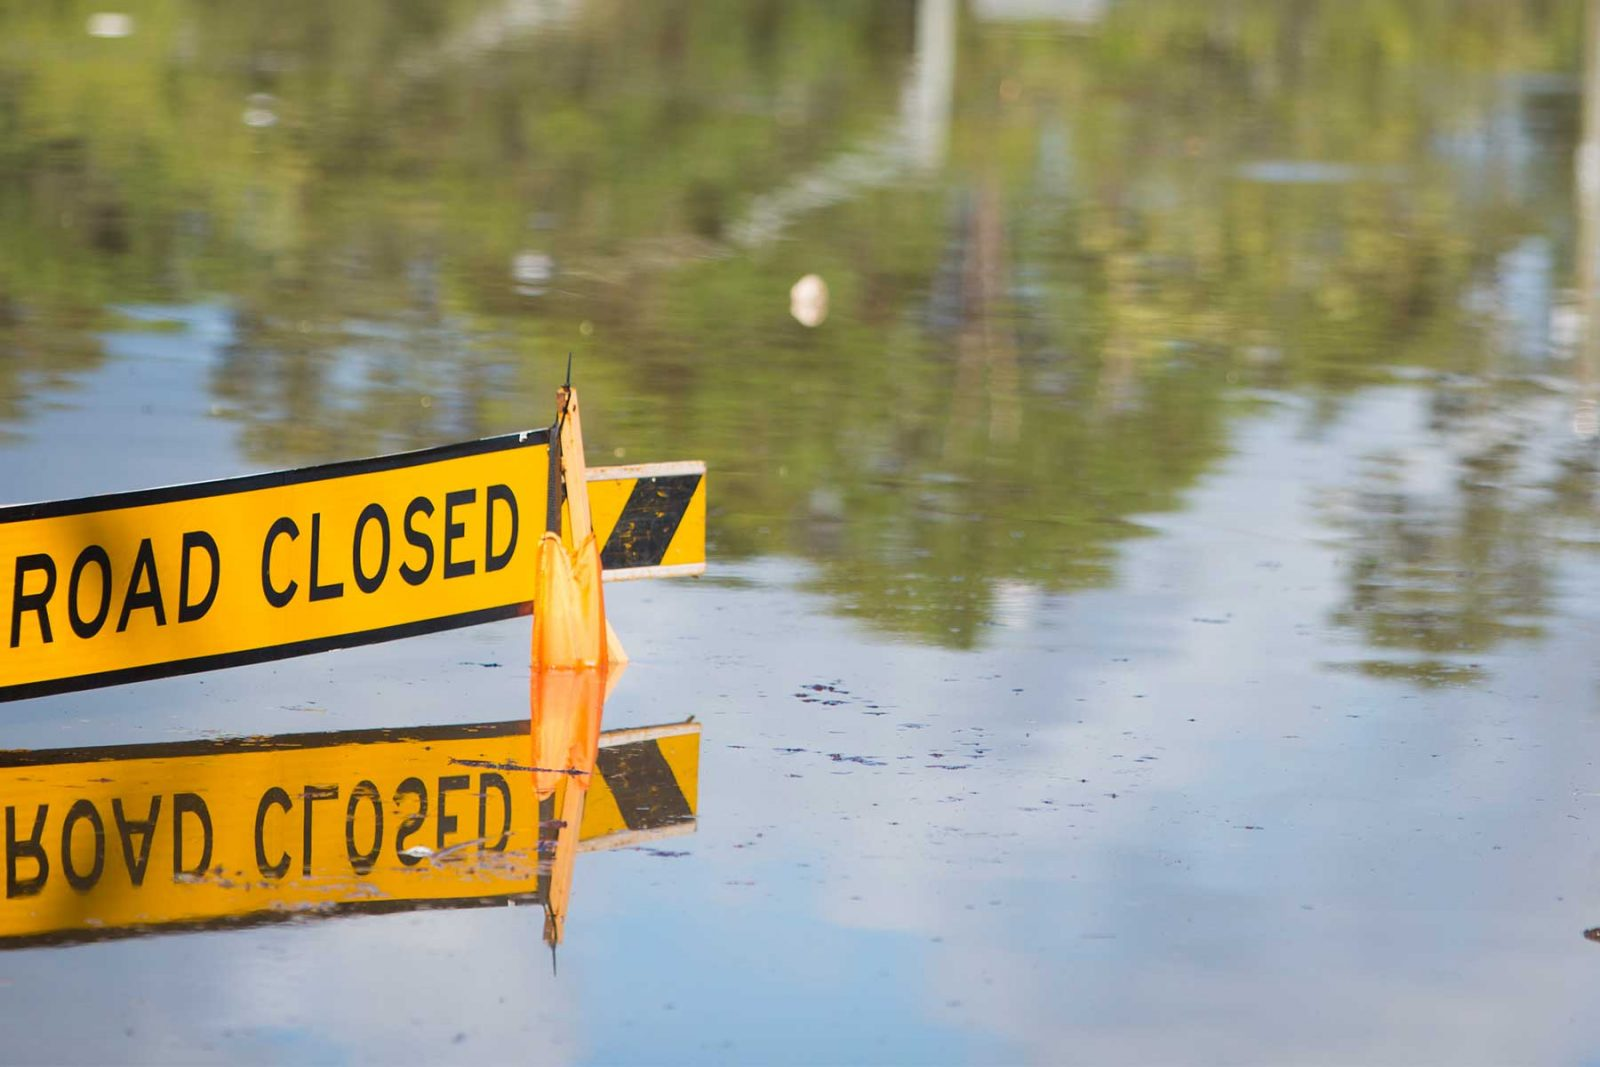 Flooded area with road closed sign